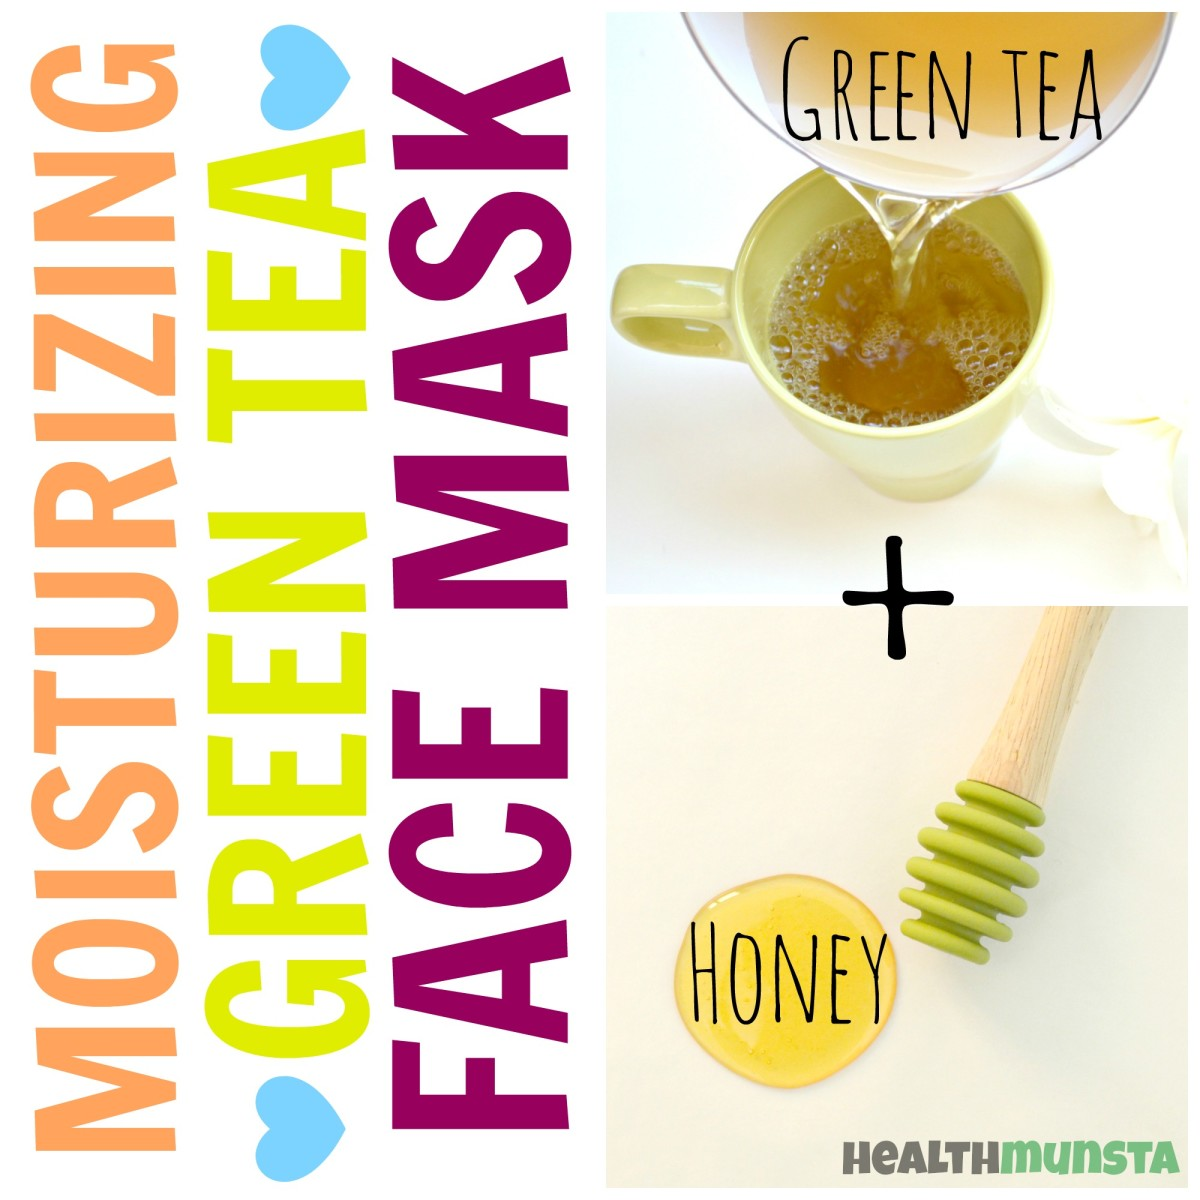 This moisturizing green tea and honey face mask is anti-oxidant rich and contains anti-aging and anti-inflammatory properties too!